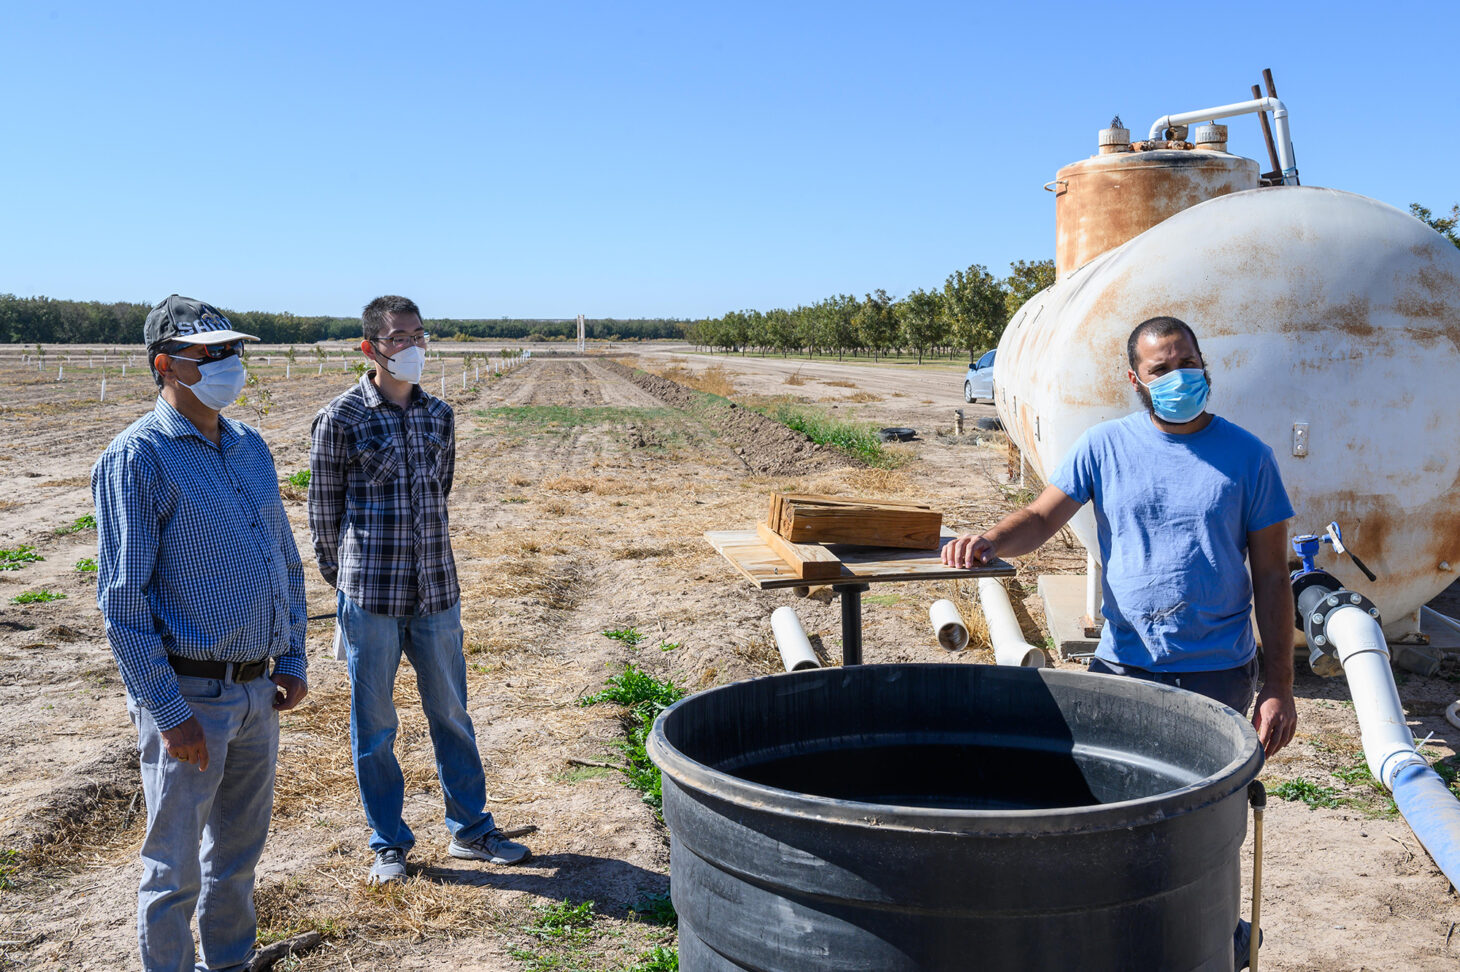 New Mexico State University College of Agricultural, Consumer and Environmental Sciences professor Manoj Shukla, left, Chang Liu, center and Adam Gonzalez, right, explain the N-Drip's Gravity Micro Irrigation system at NMSU's Leyendecker Plant Science Research Center  | Photo courtesy NMSU